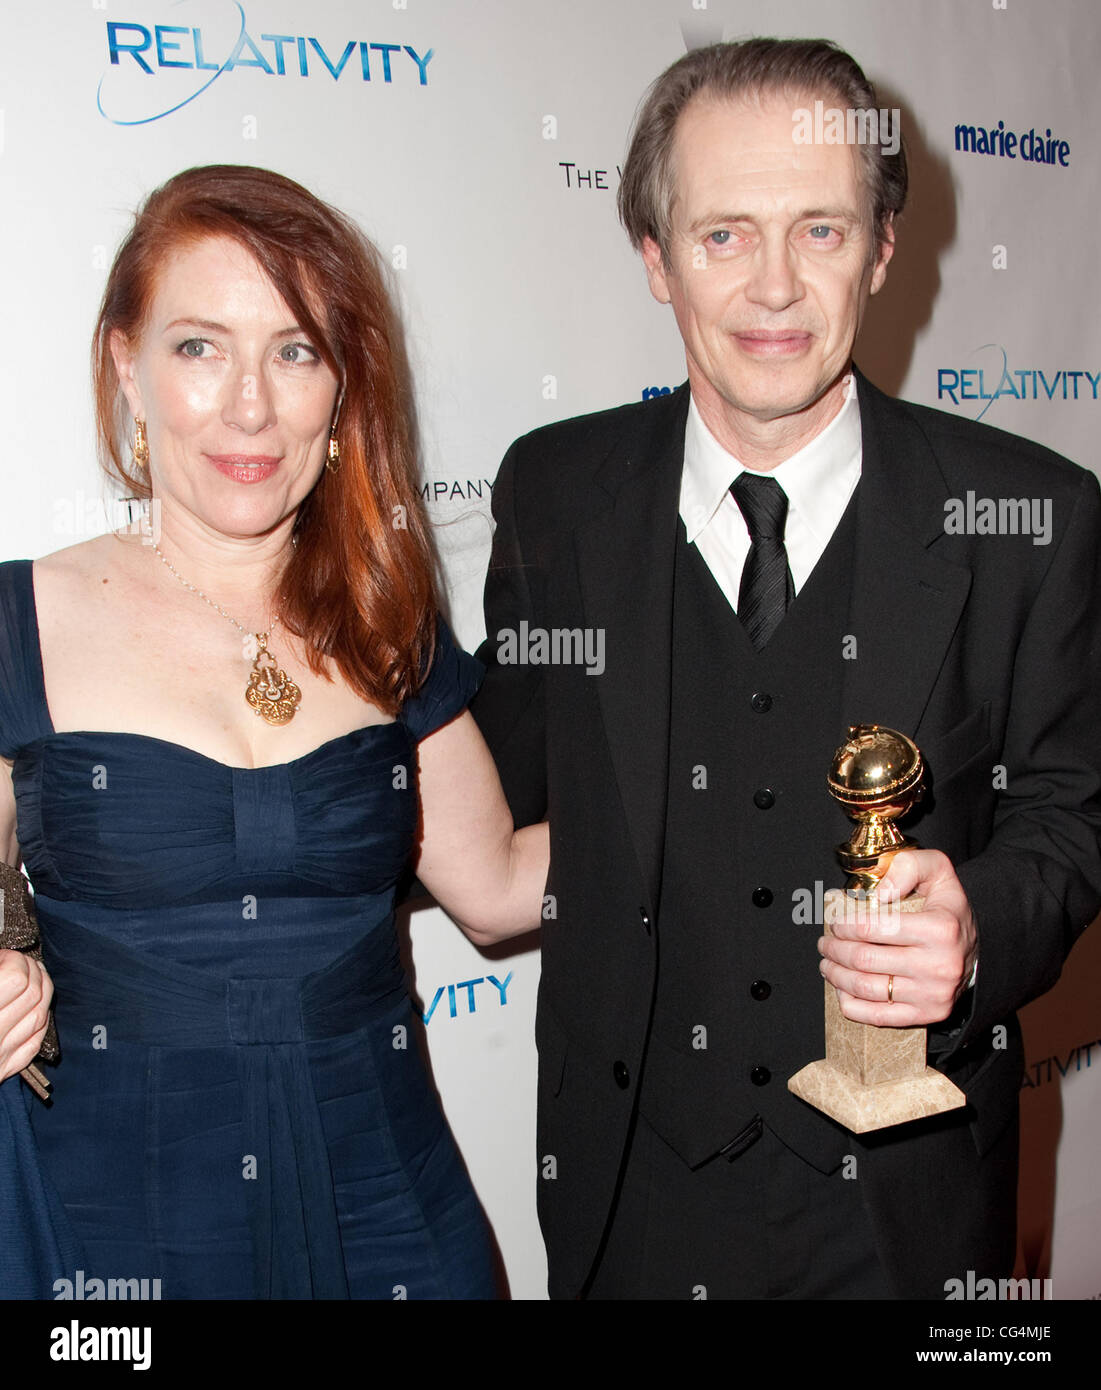 steve buscemi and jo andres weinstein company 39 s golden globe awards stock photo 44359238 alamy. Black Bedroom Furniture Sets. Home Design Ideas